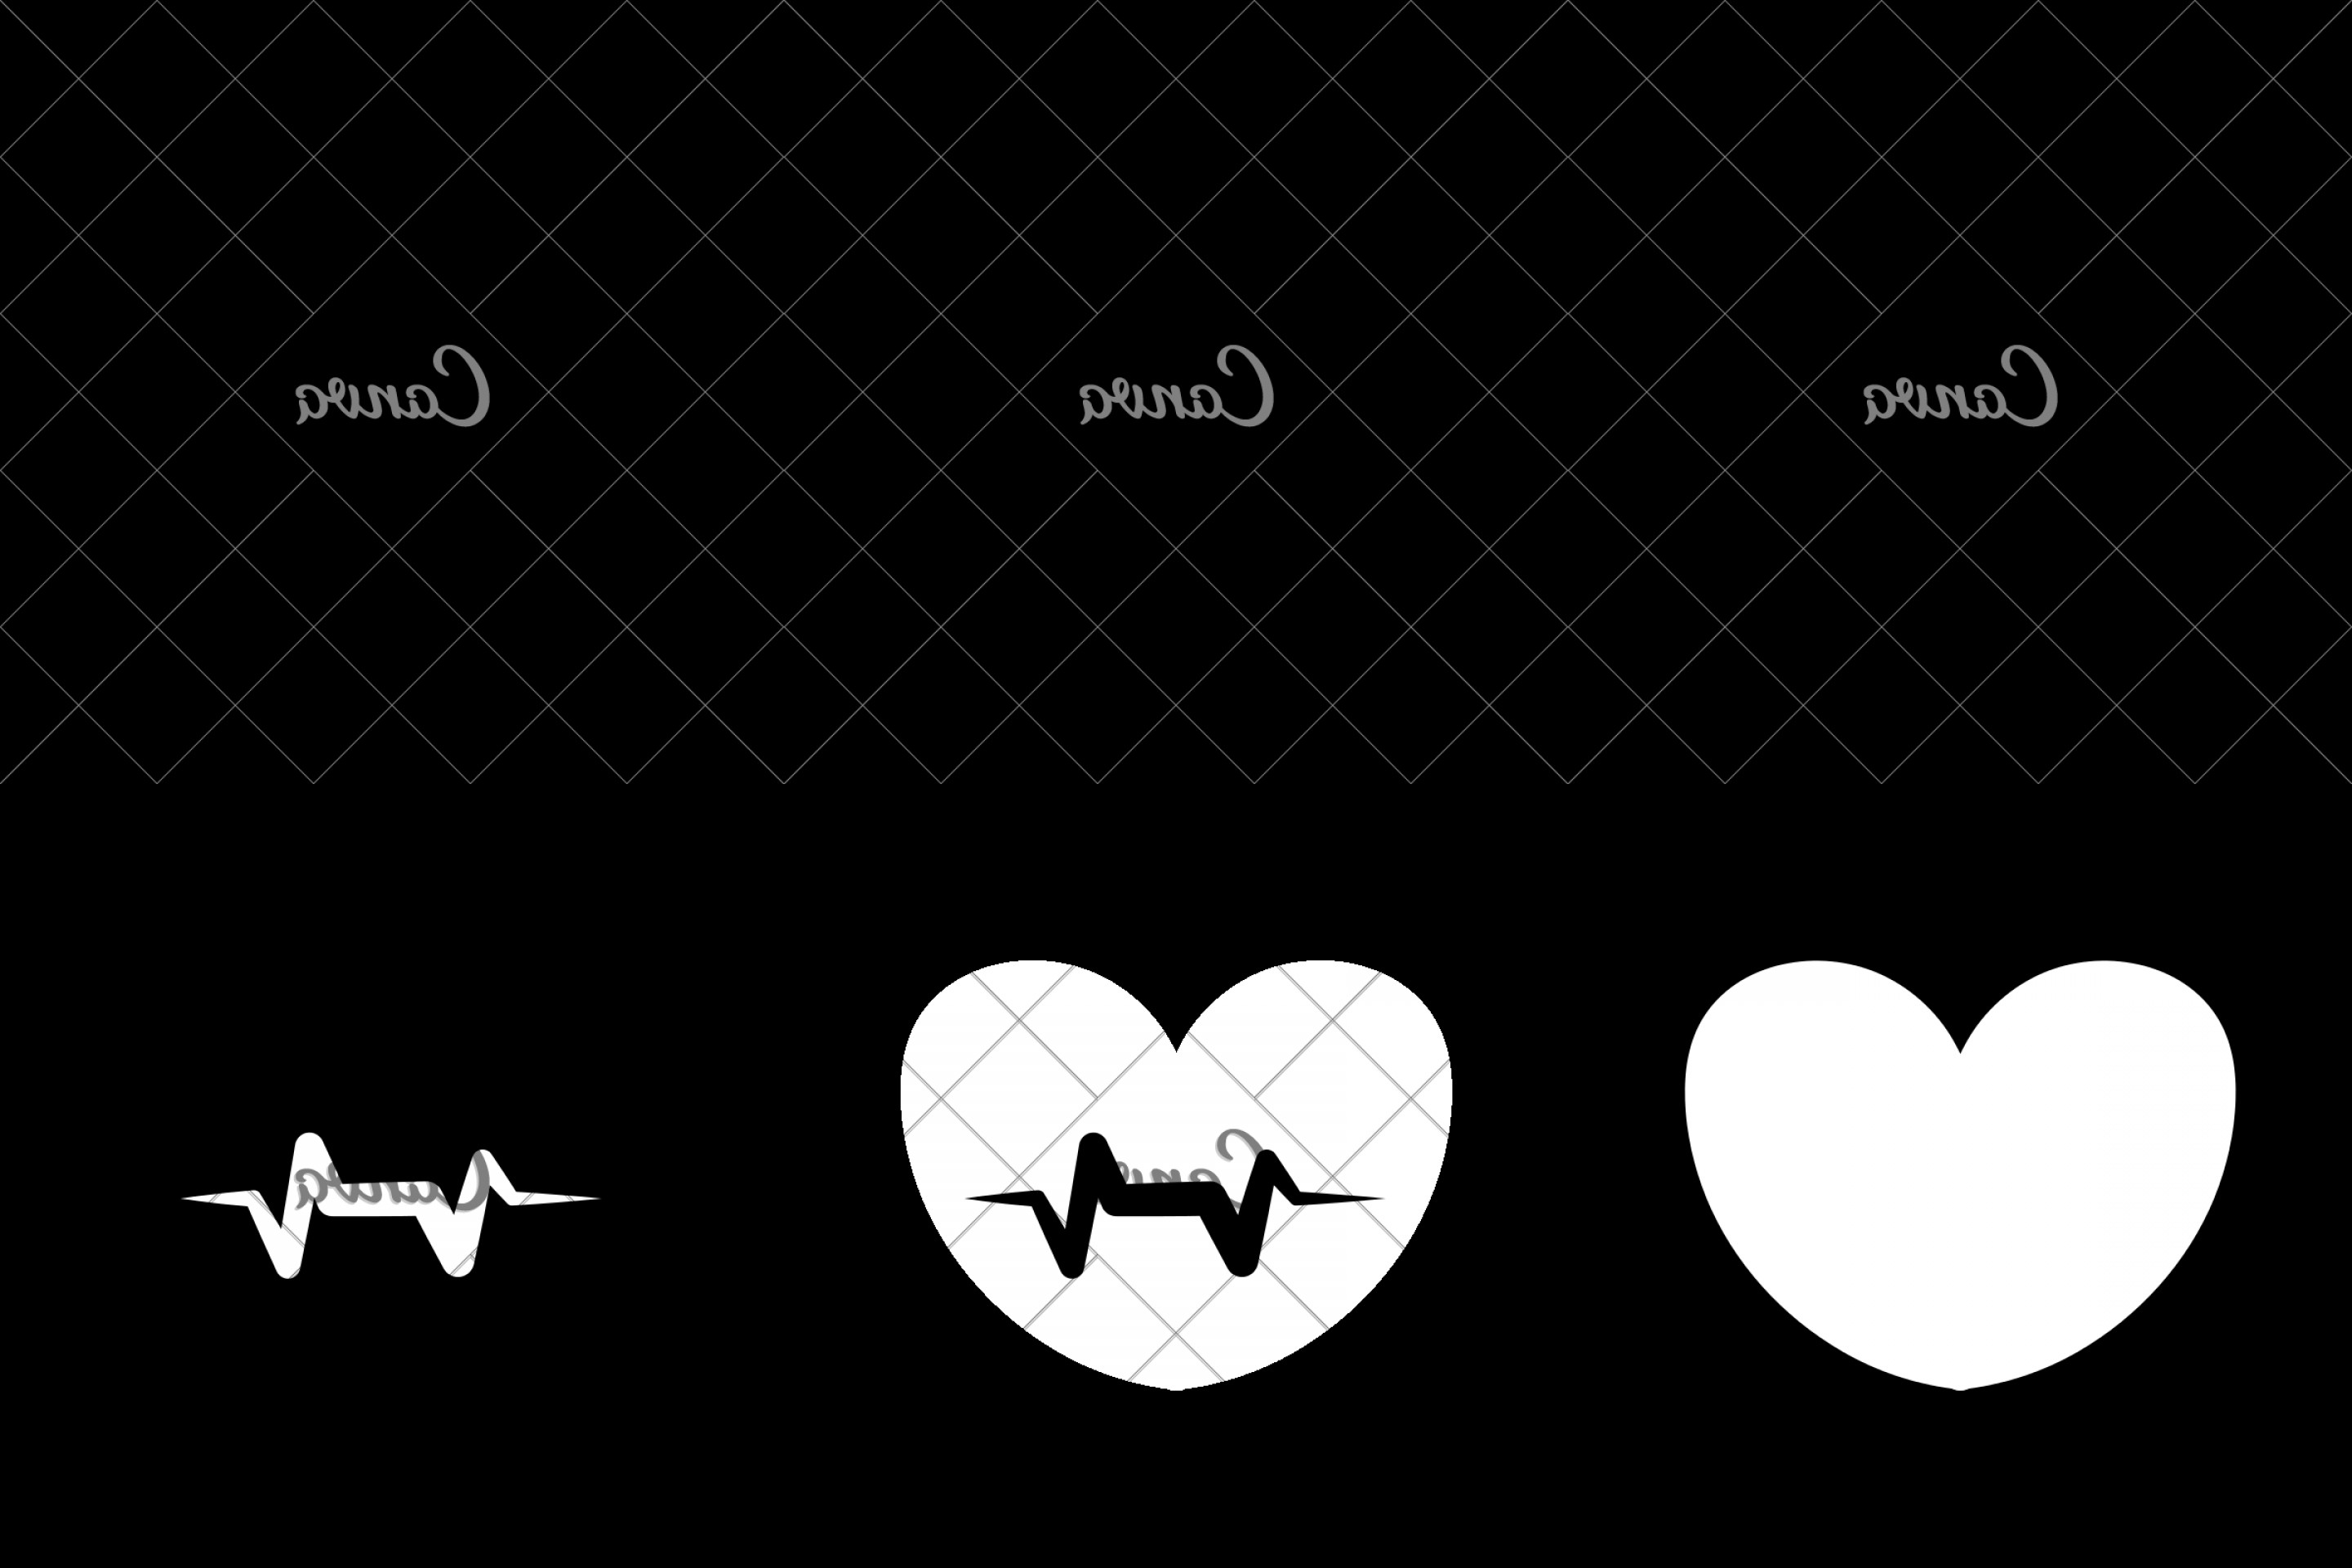 TSS Vector: Mabxxbetss Heart Shape And Pulse Icon Medical Care Design Vector Graphic